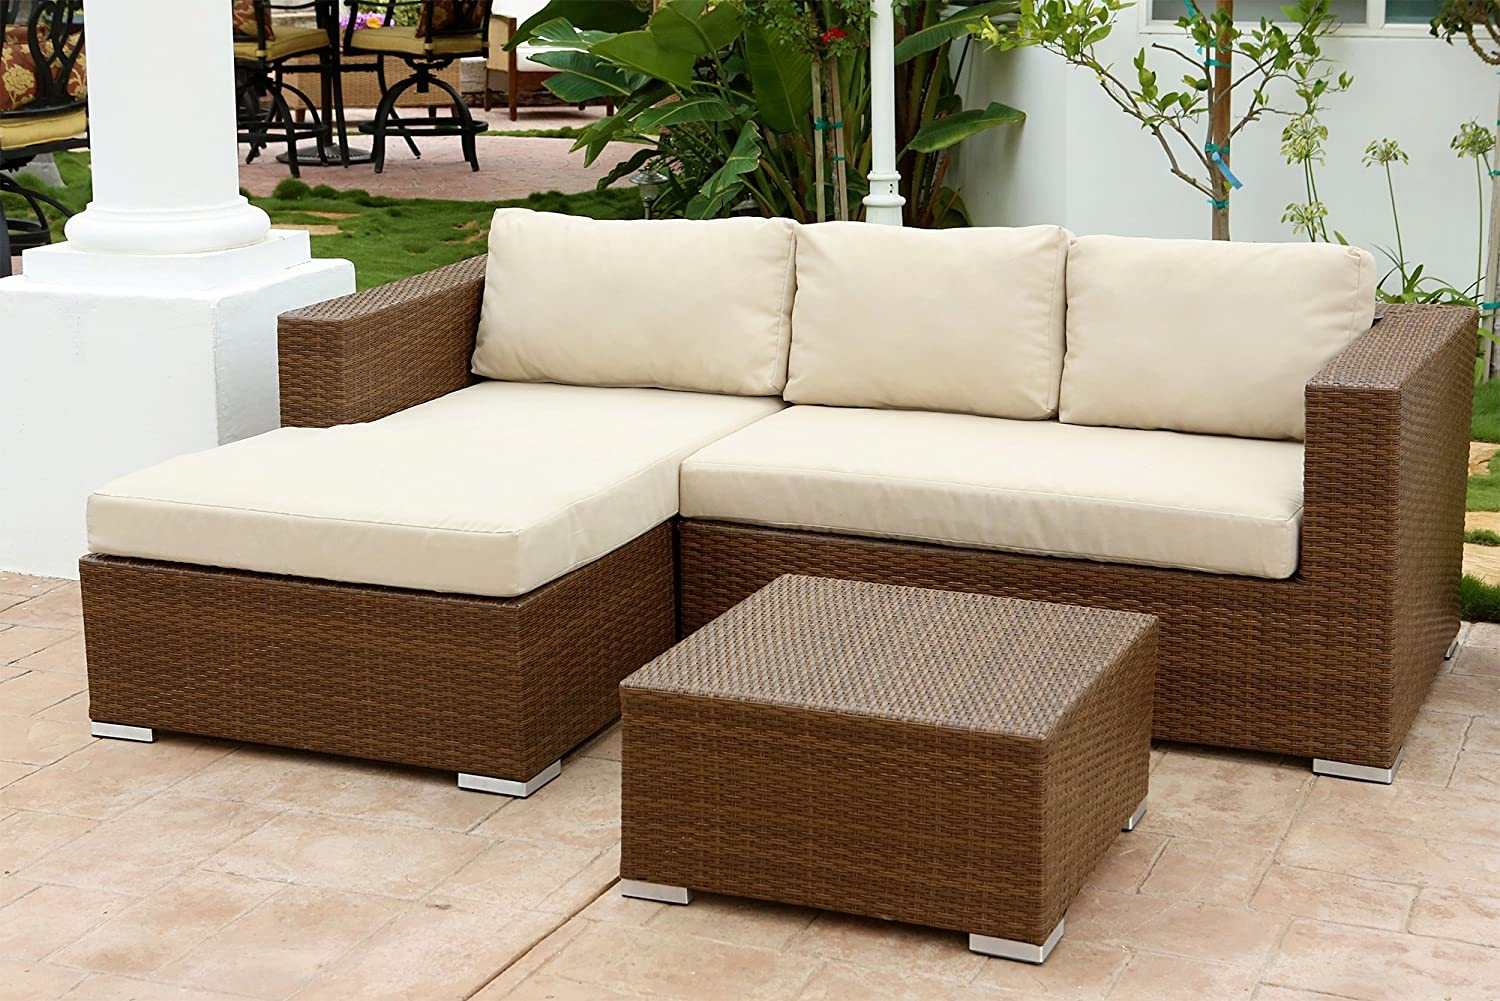 for versus sofa wicker great black coffee white wonderful patio like and table with sectional natural set garden cushion round furniture outdoor synthetic